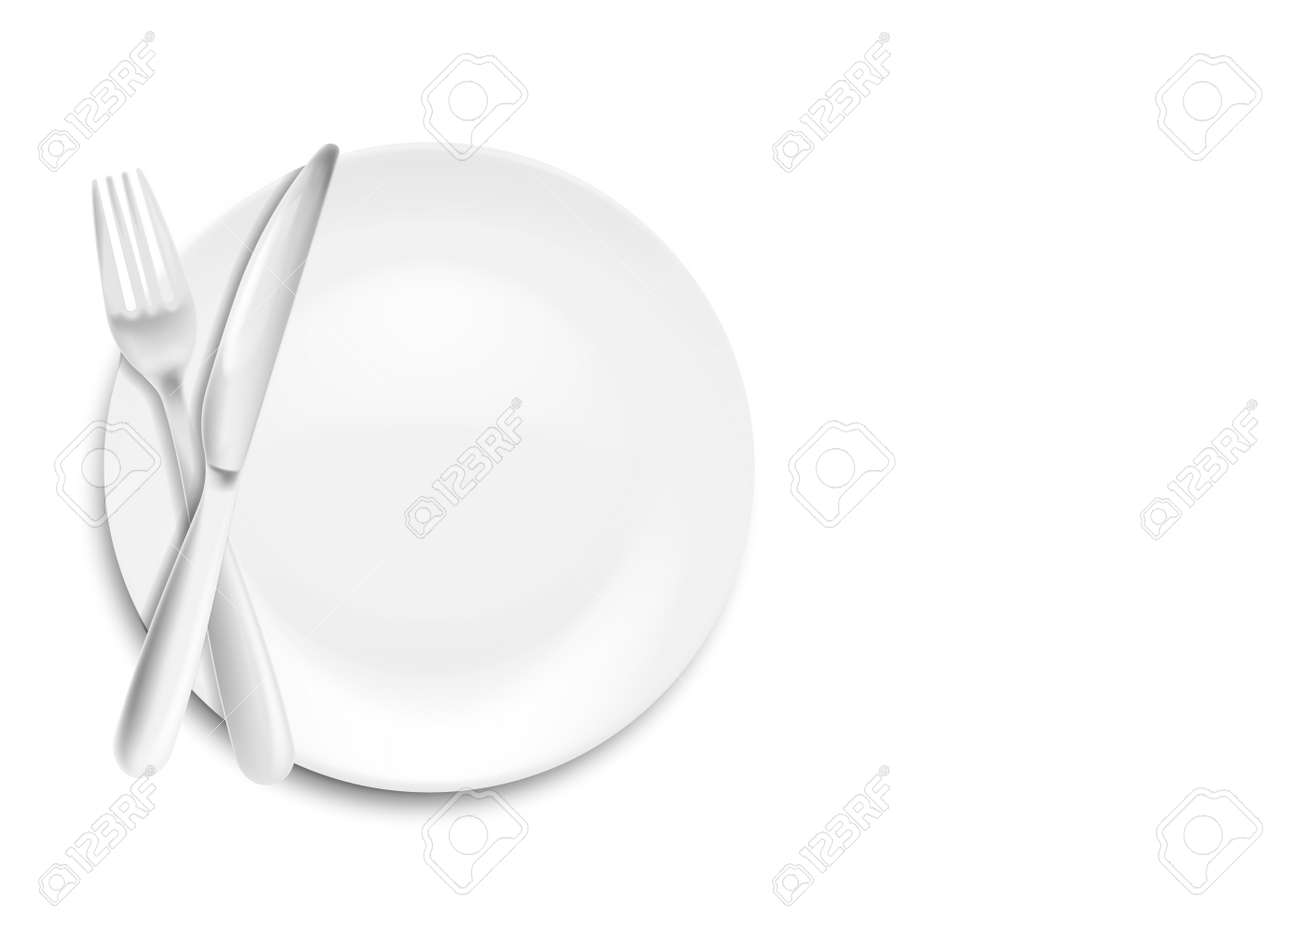 Stainless steel knife, spoon and fork with plate isolated on white background. Vector illustration. Eps 10. - 124142656